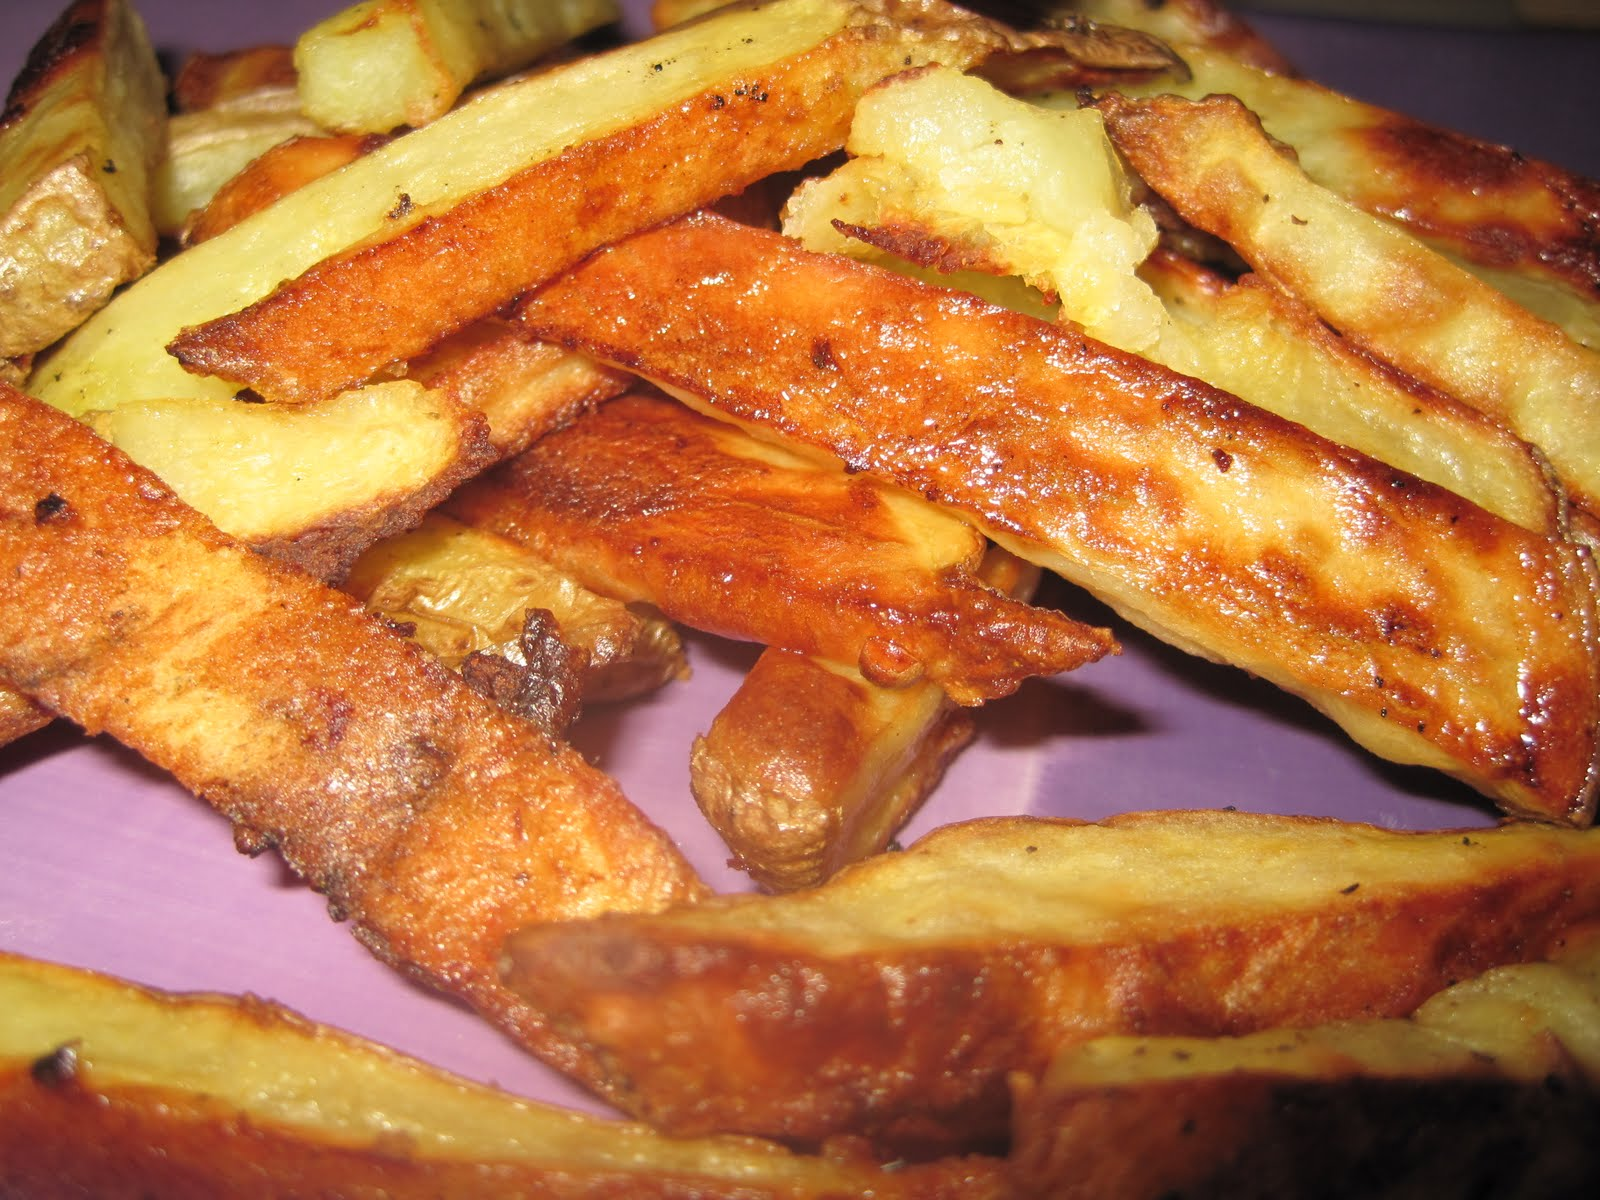 fries okra fries pickle fries zucchini fries home fries les halles ...